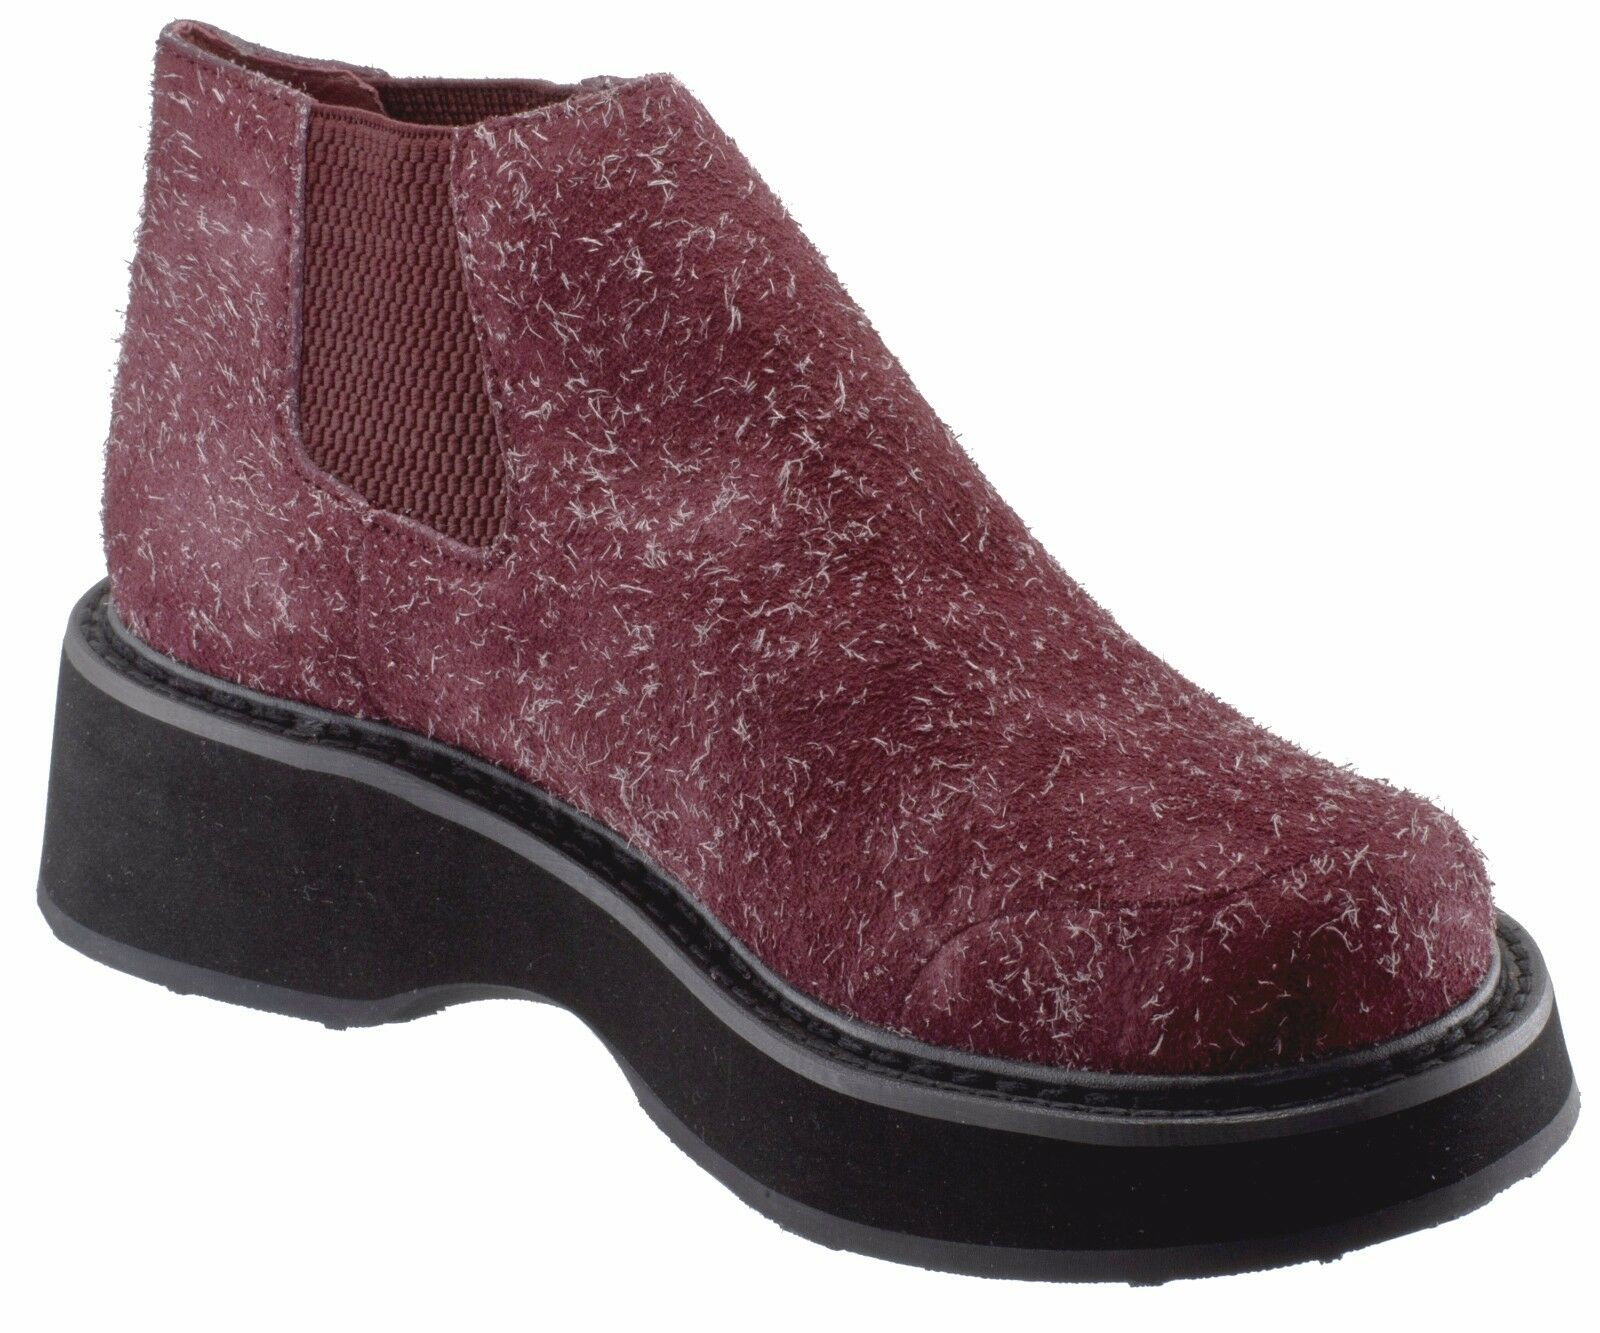 SIMPLE 9506 WOMENS NEW KIWI MID BOOT SHOE  US 7